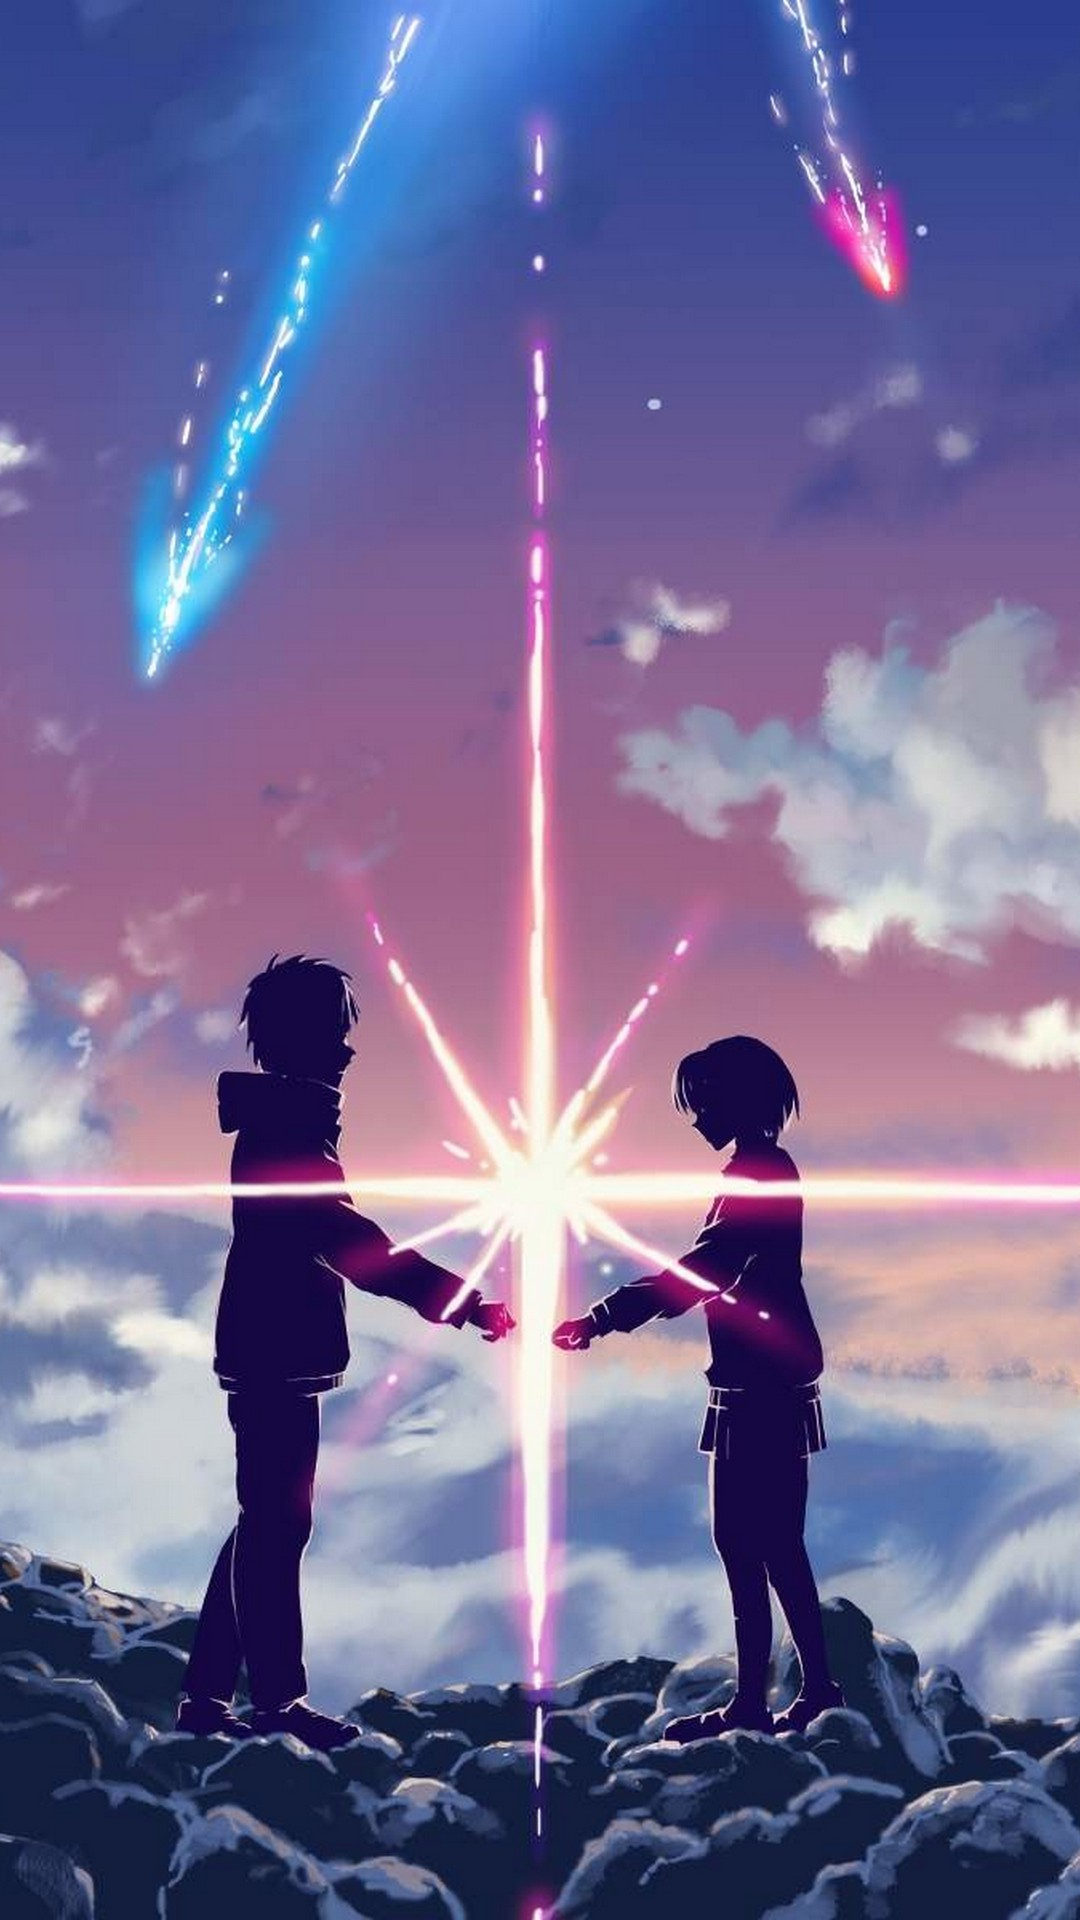 Anime Couple Love in Clouds